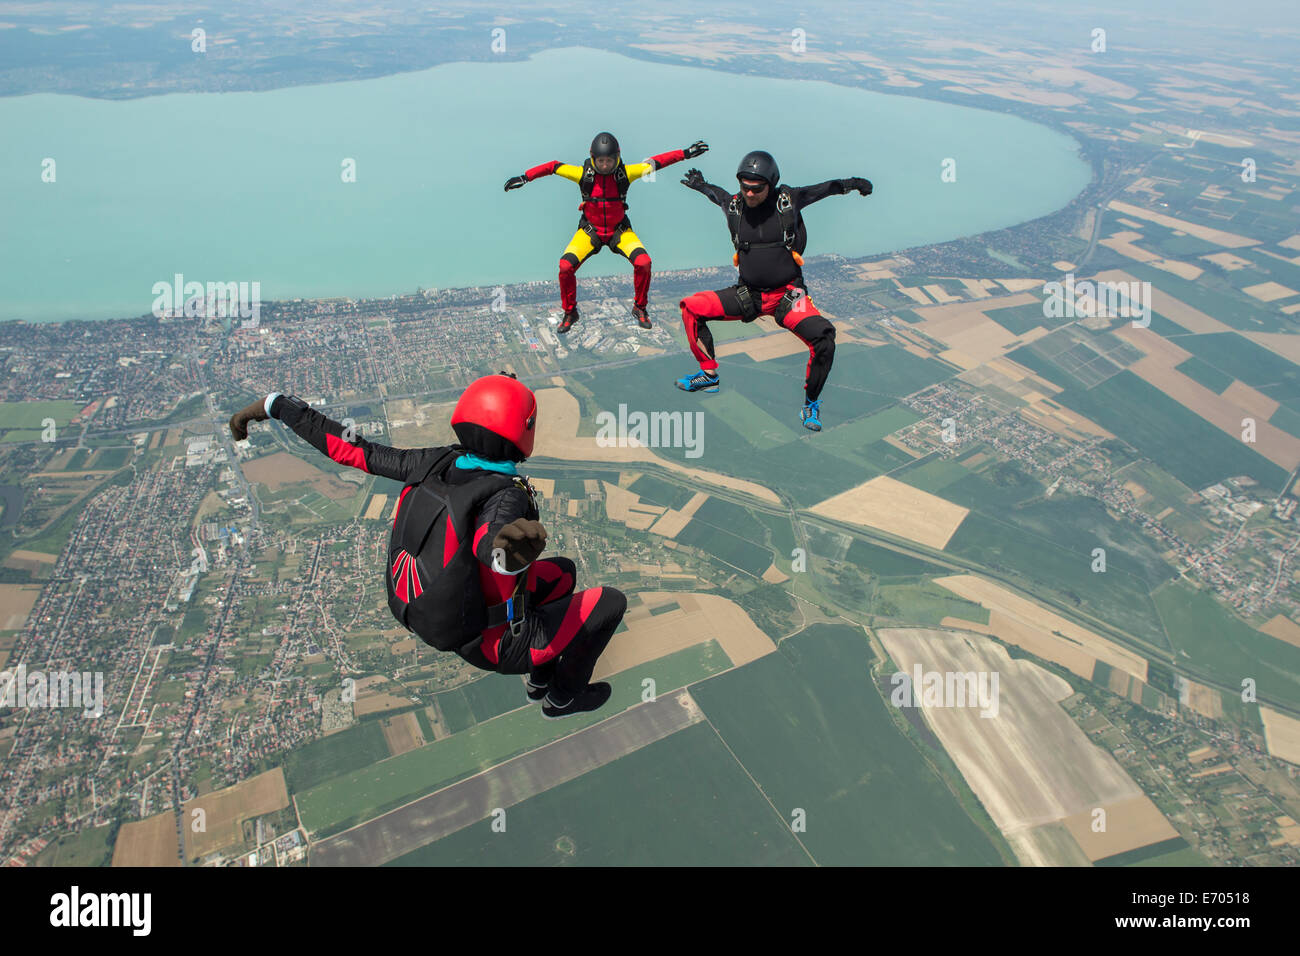 Tre skydivers freeflying in formazione, Siofok, Somogy, Ungheria Immagini Stock